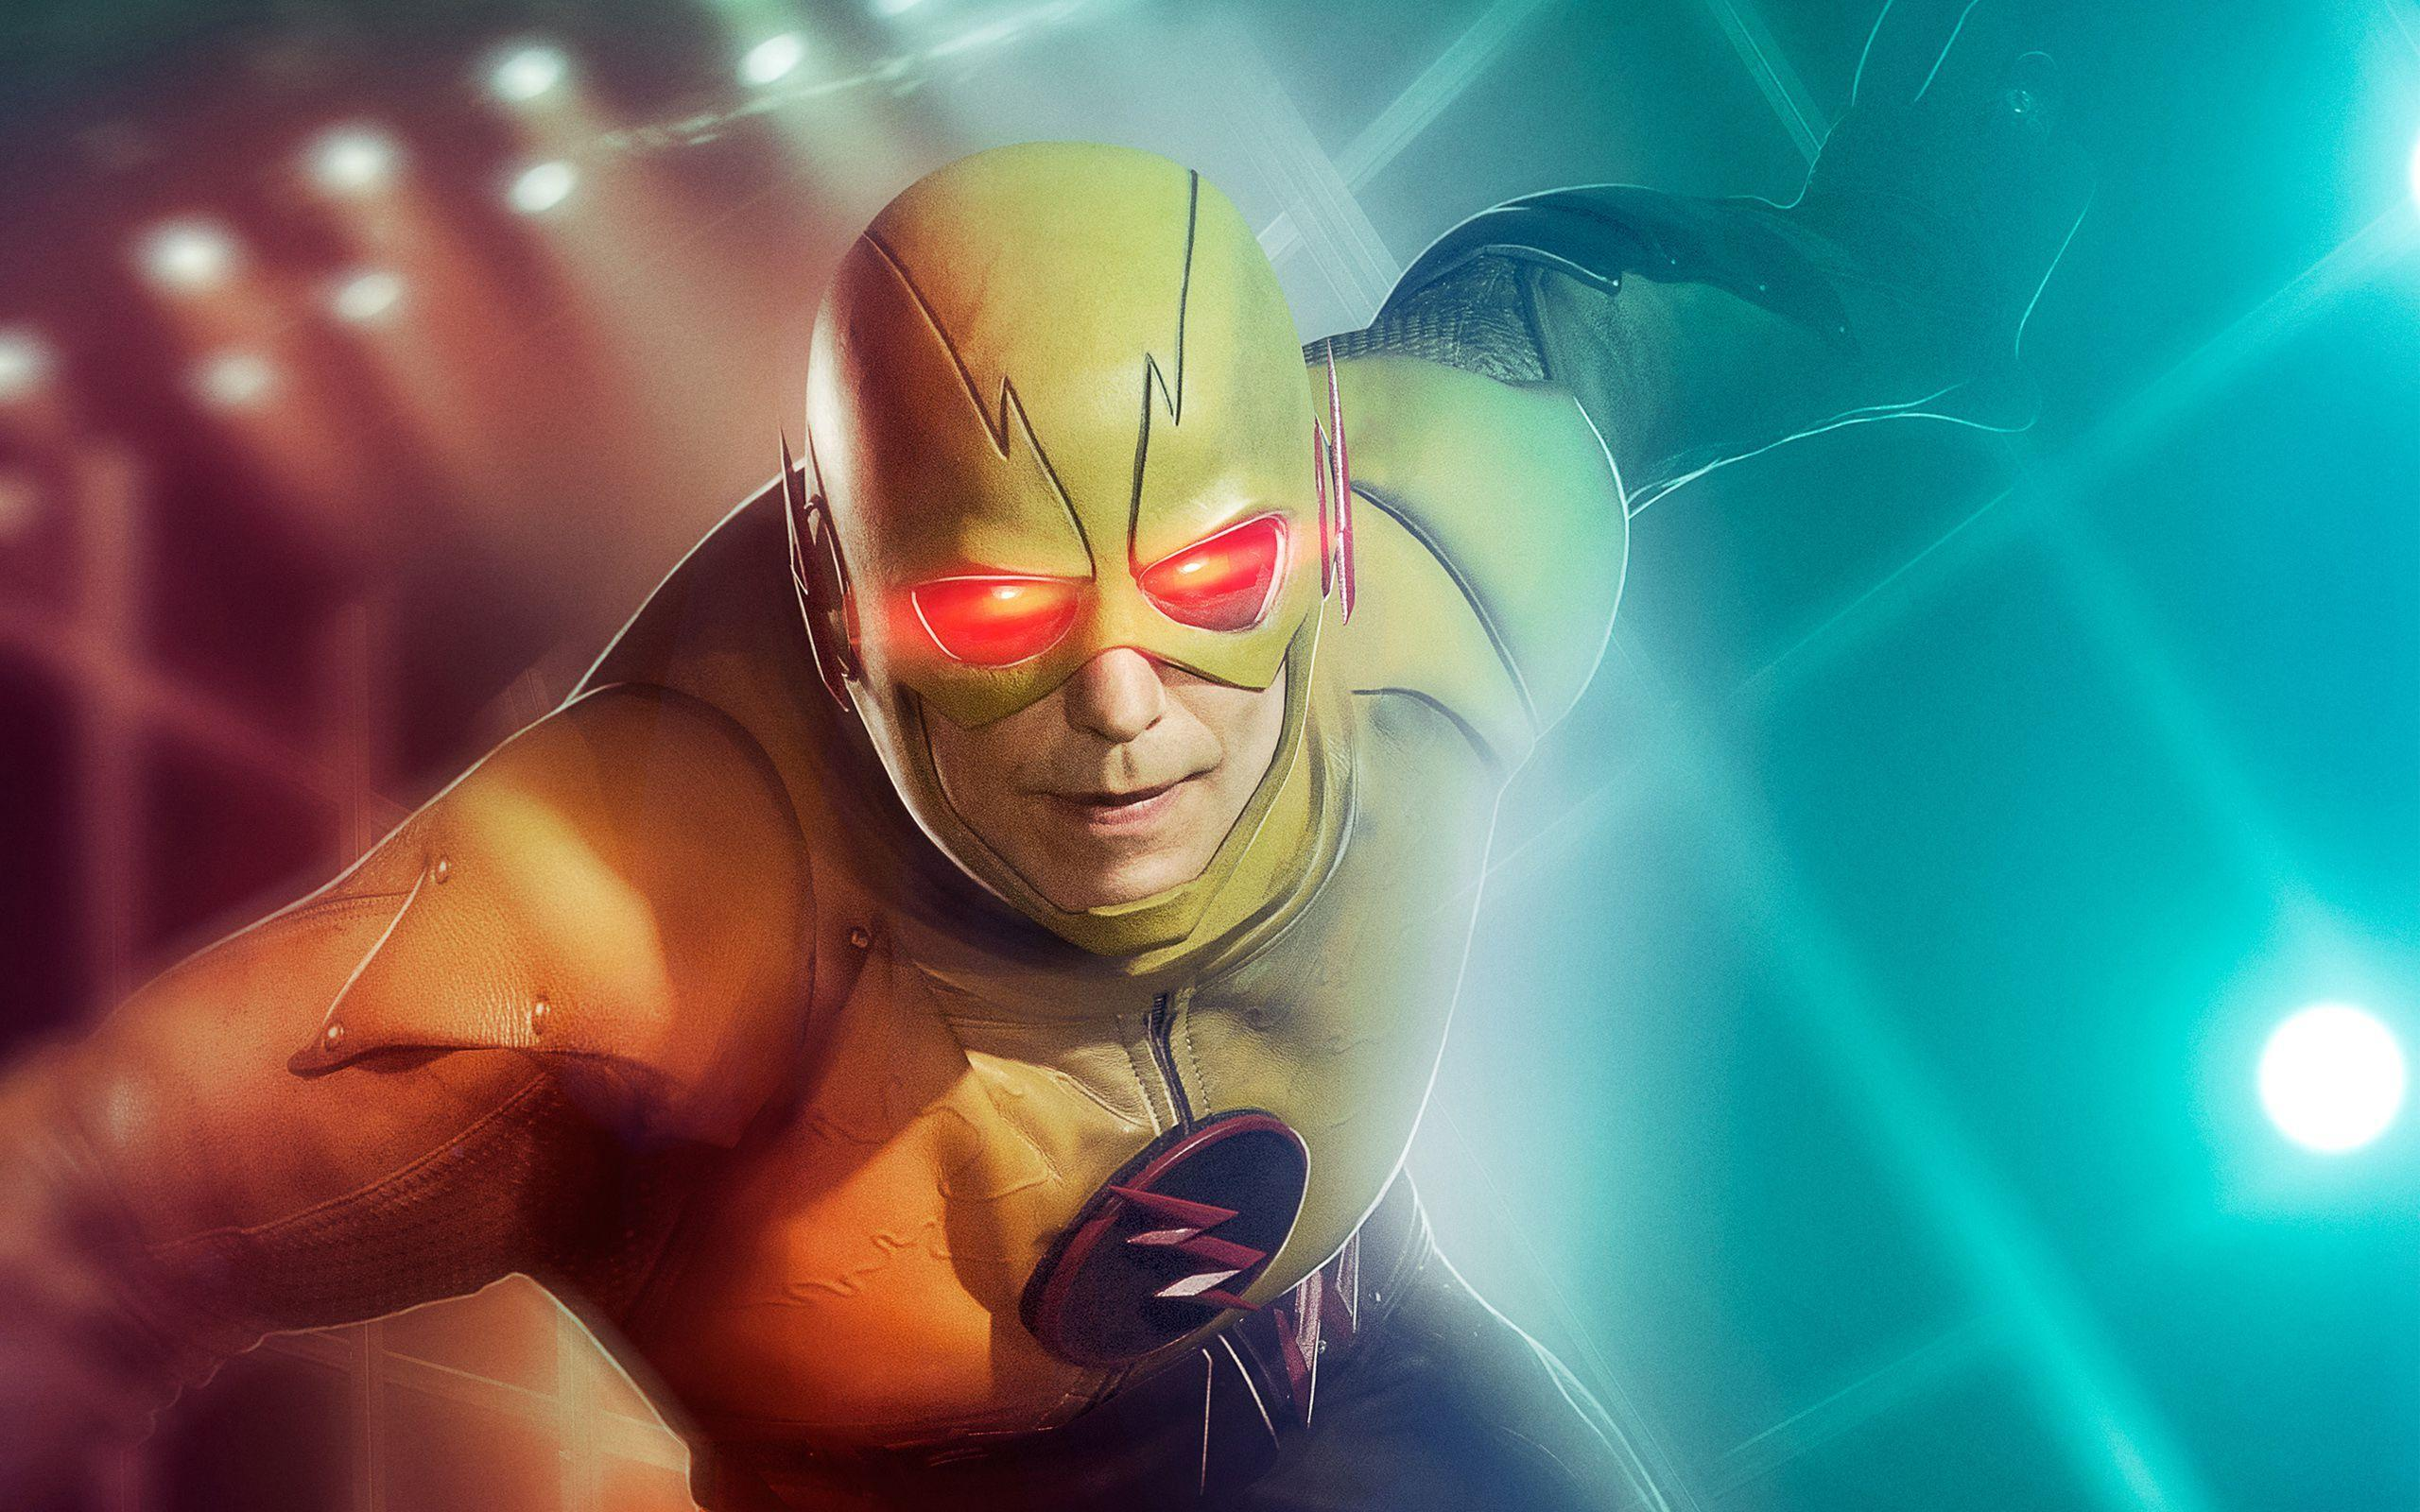 35 The Flash